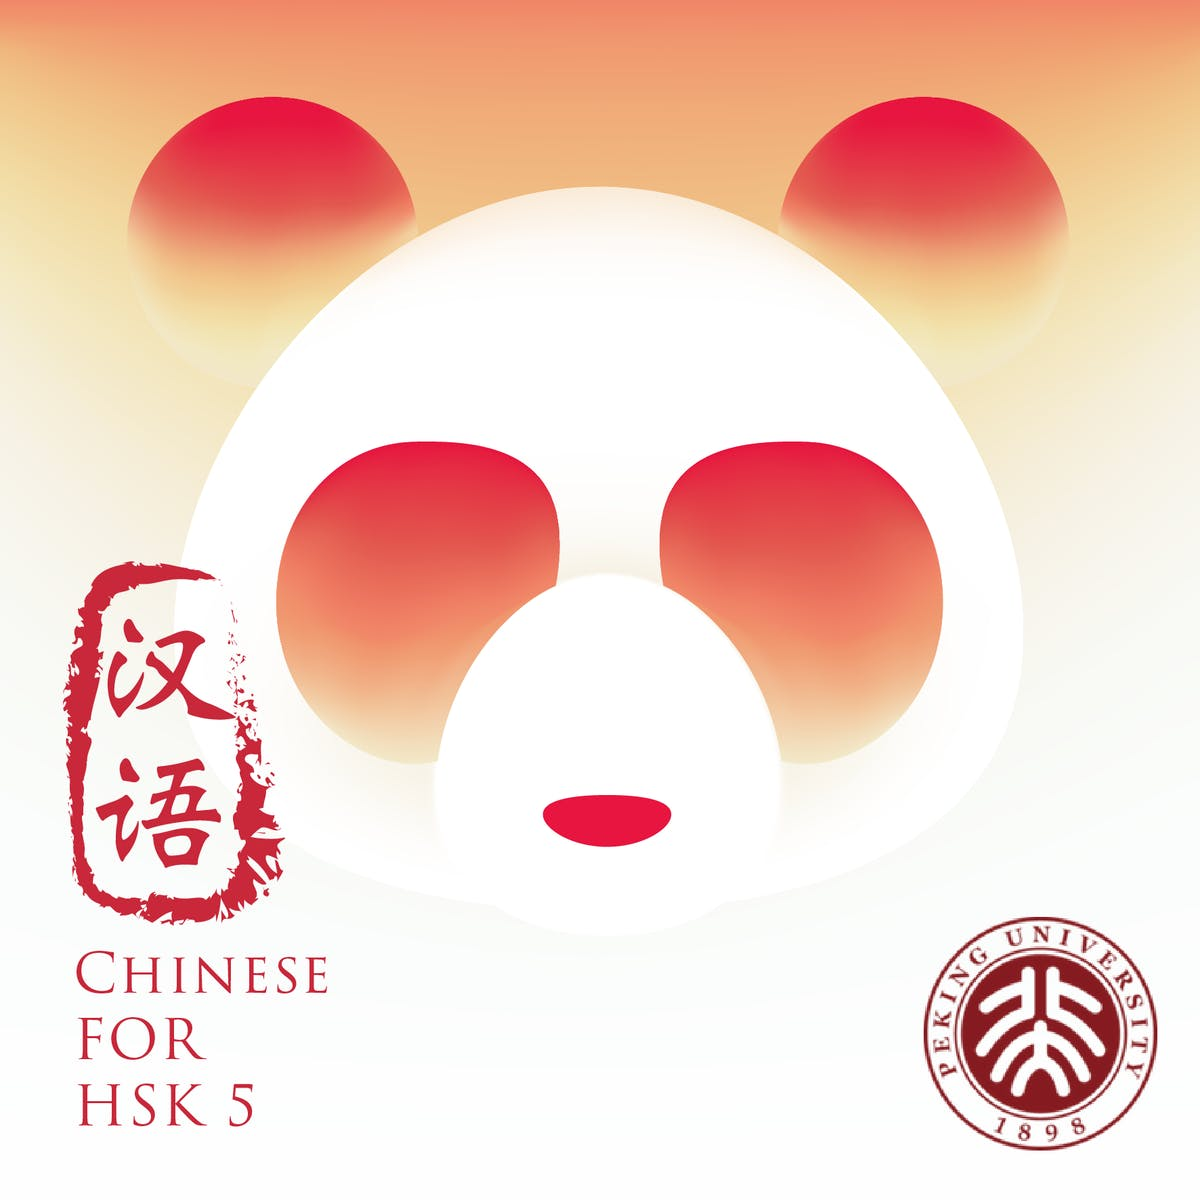 Chinese for HSK 5